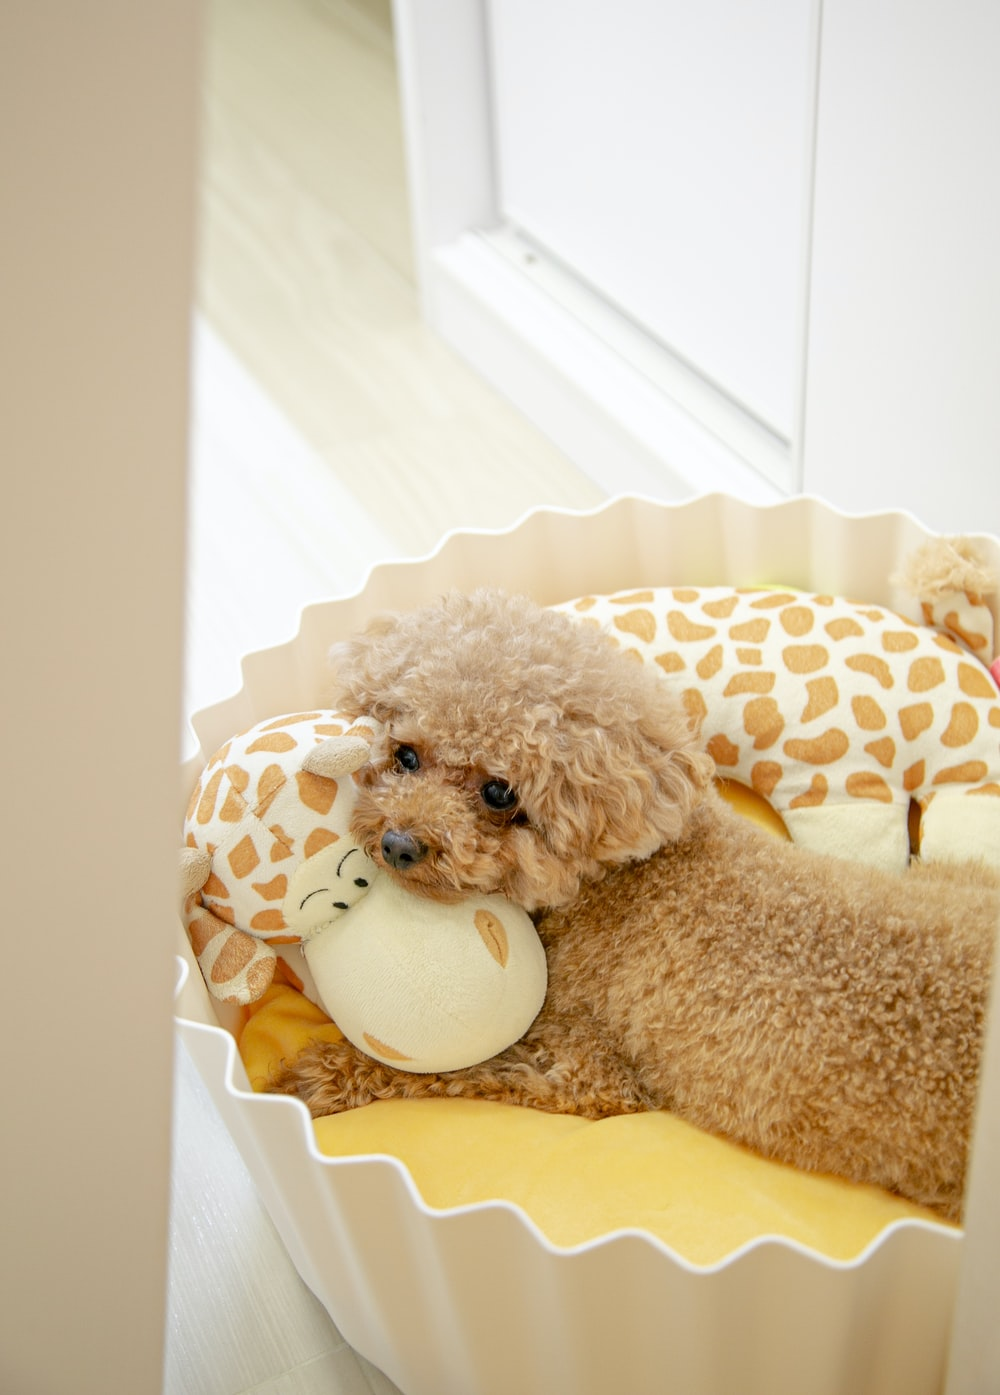 brown poodle puppy on white and brown polka dot textile